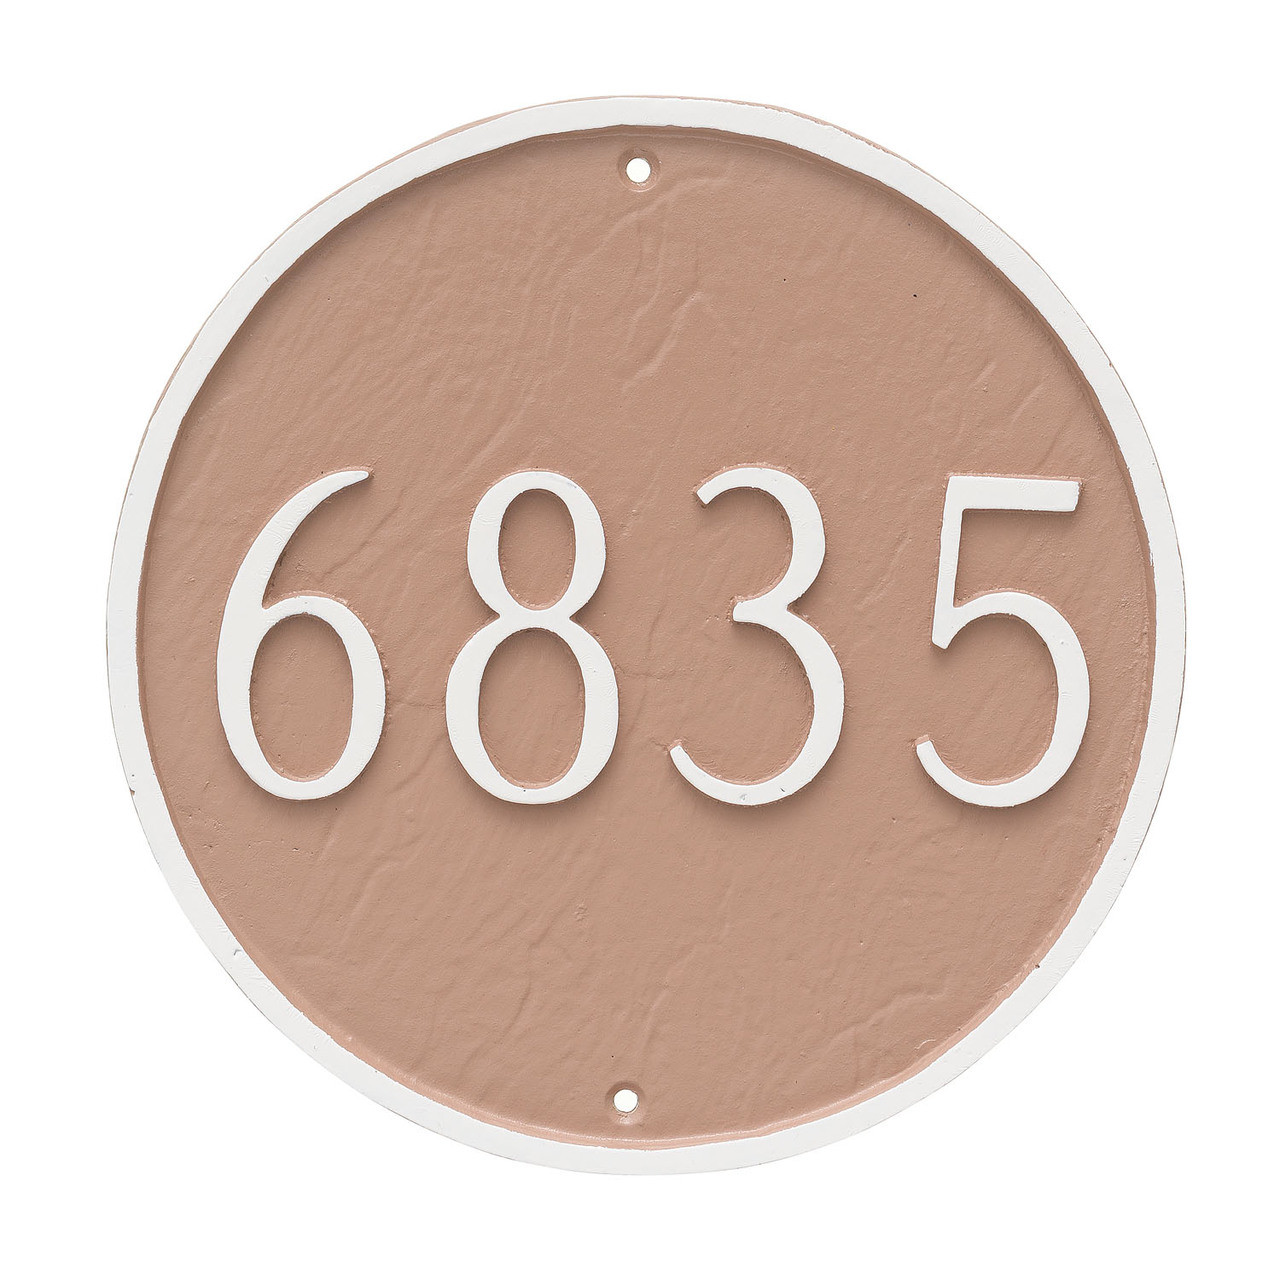 Round House Number Plaque (Large) shown in Taupe background and white border and numbers